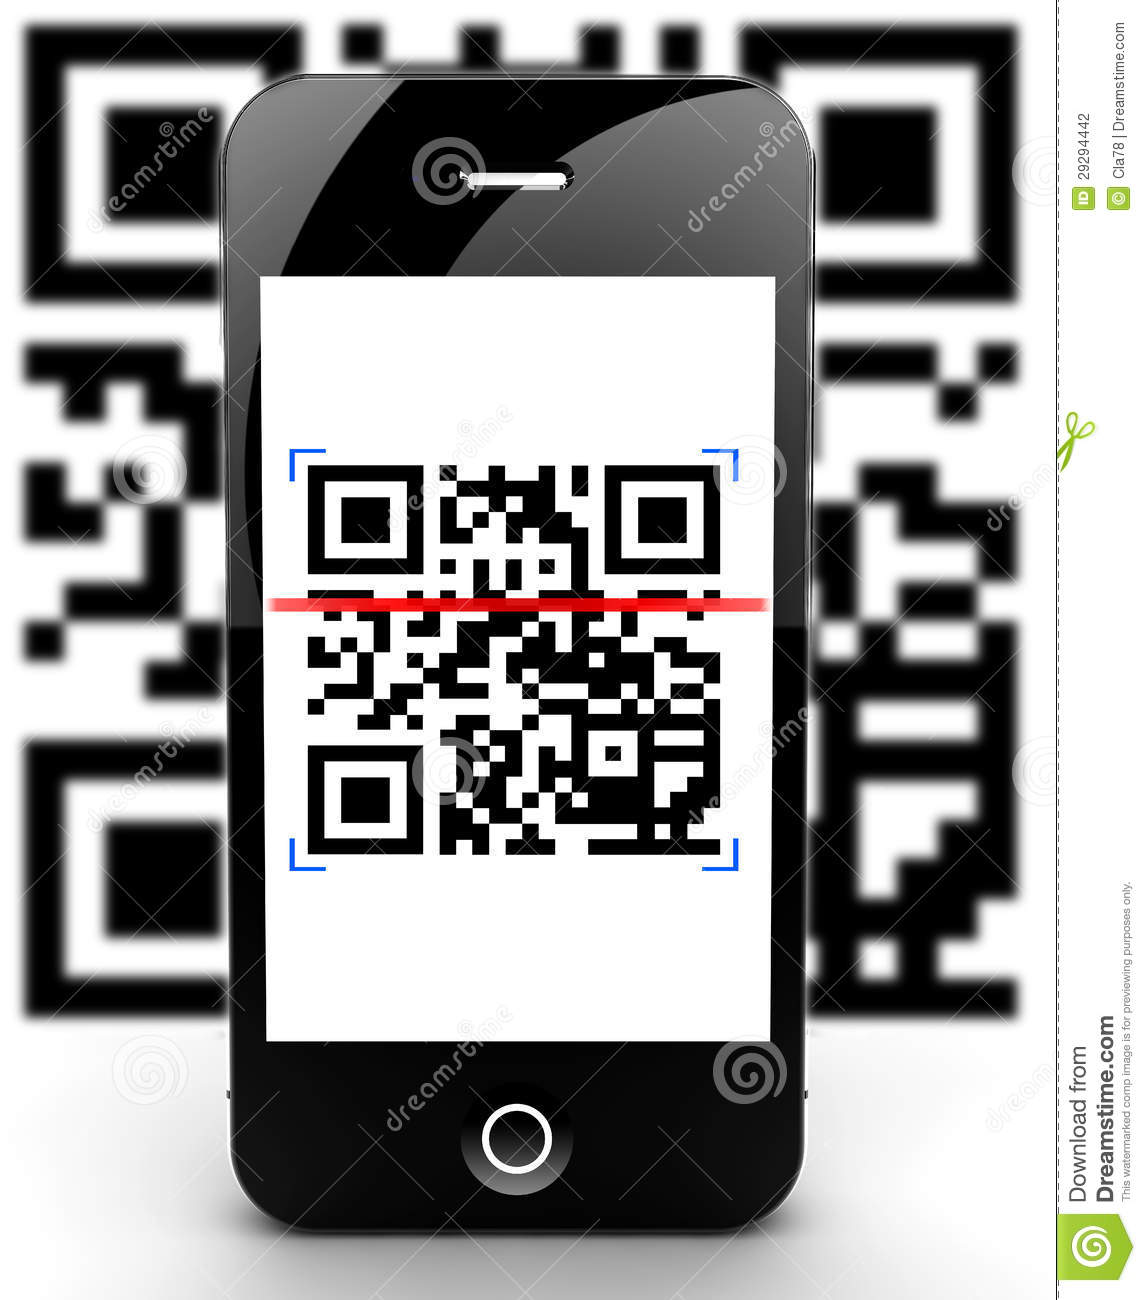 Smartphone Scanning Code Out Of Focus Stock Illustration